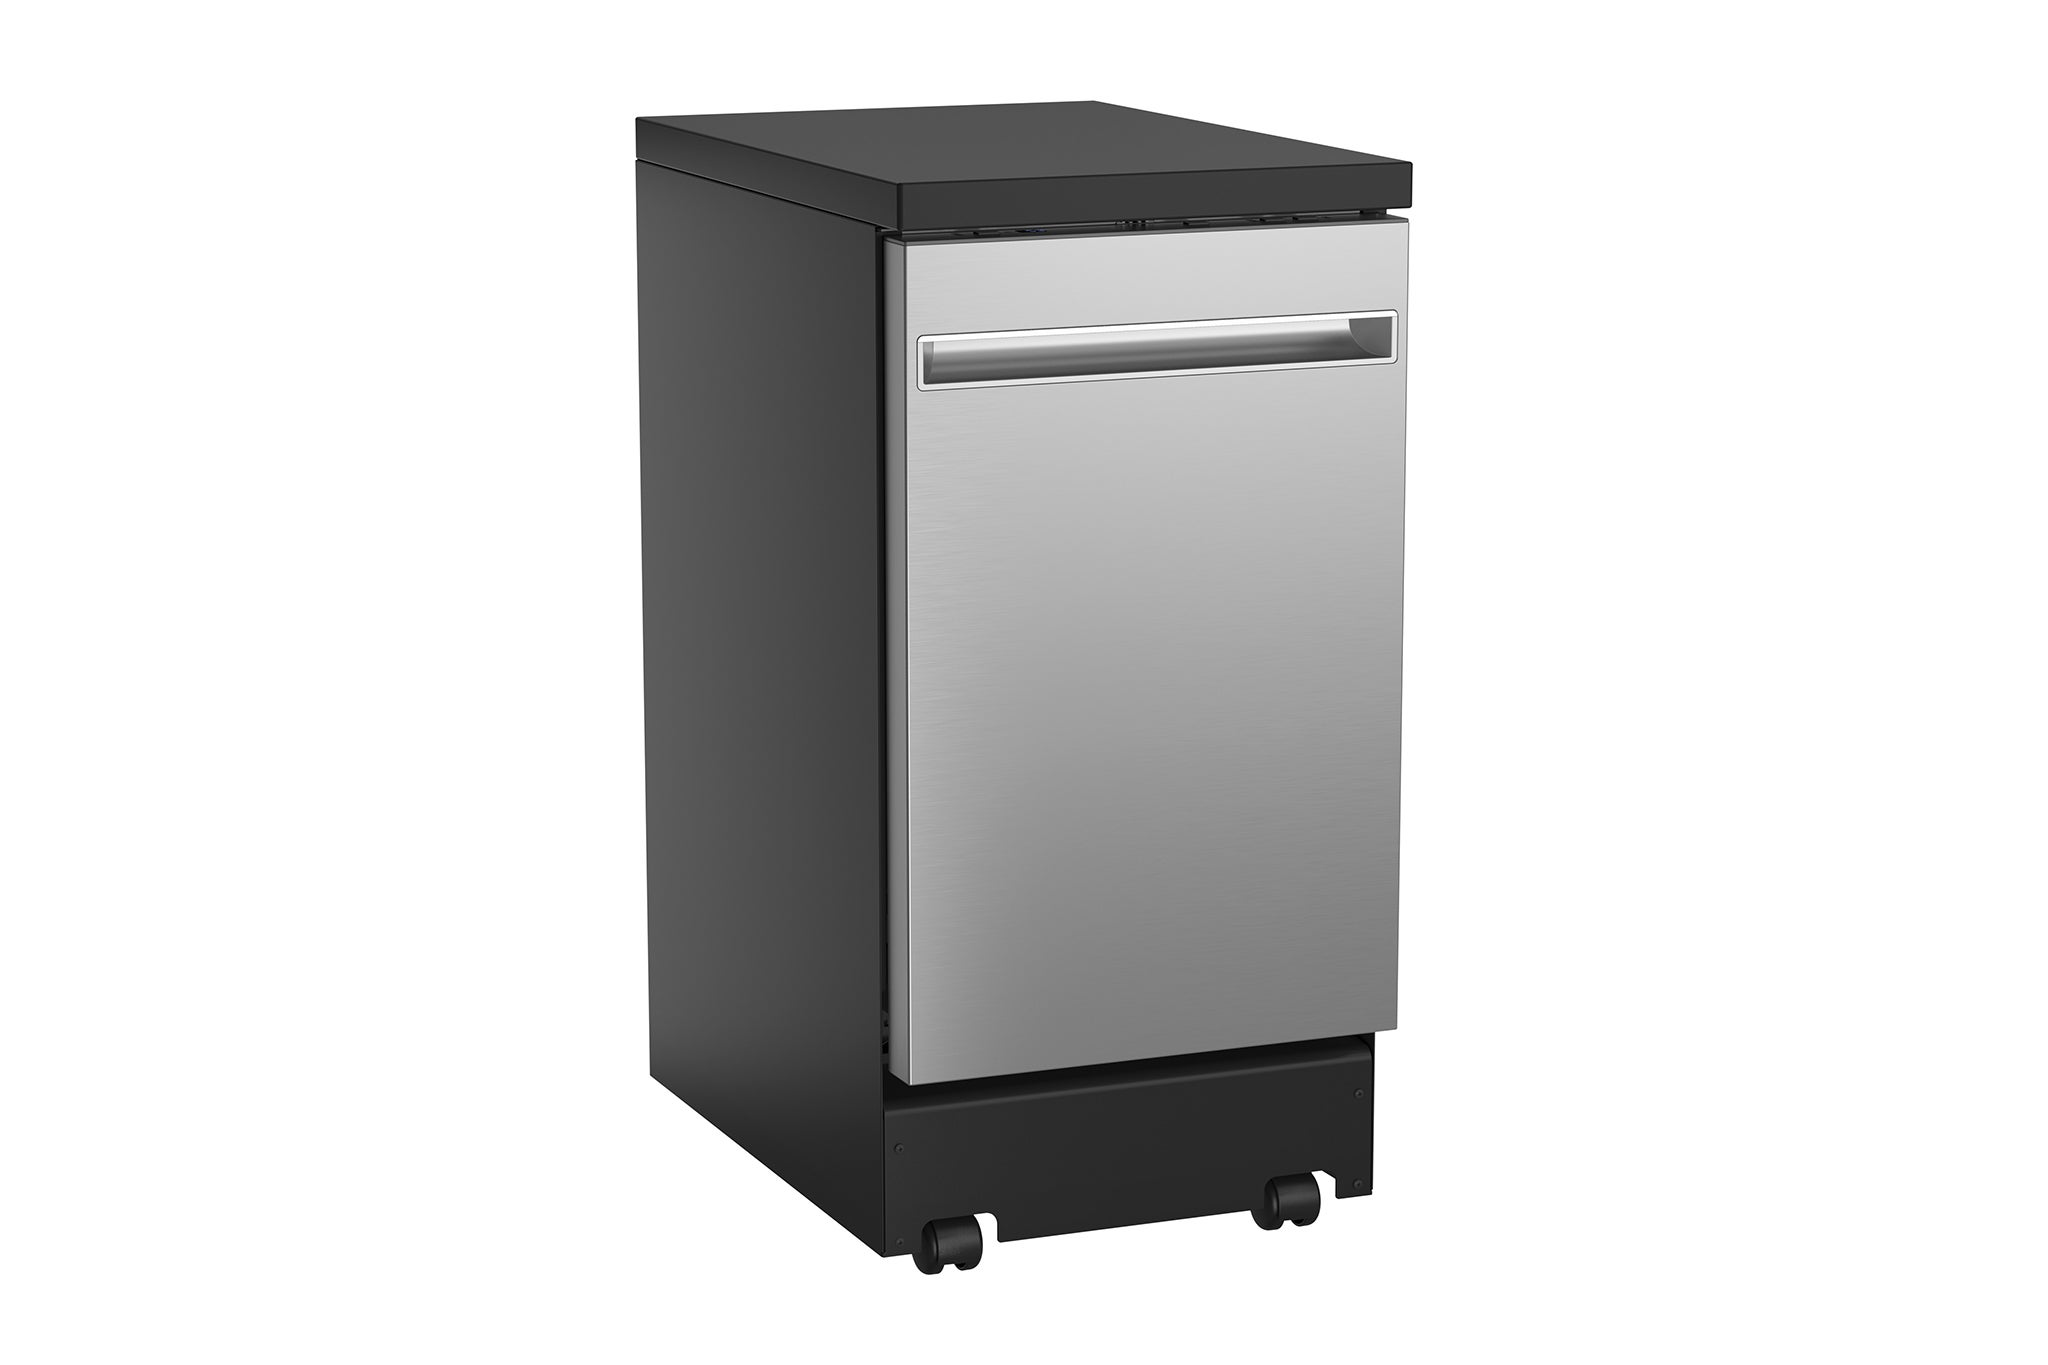 the best portable dishwasher 2021